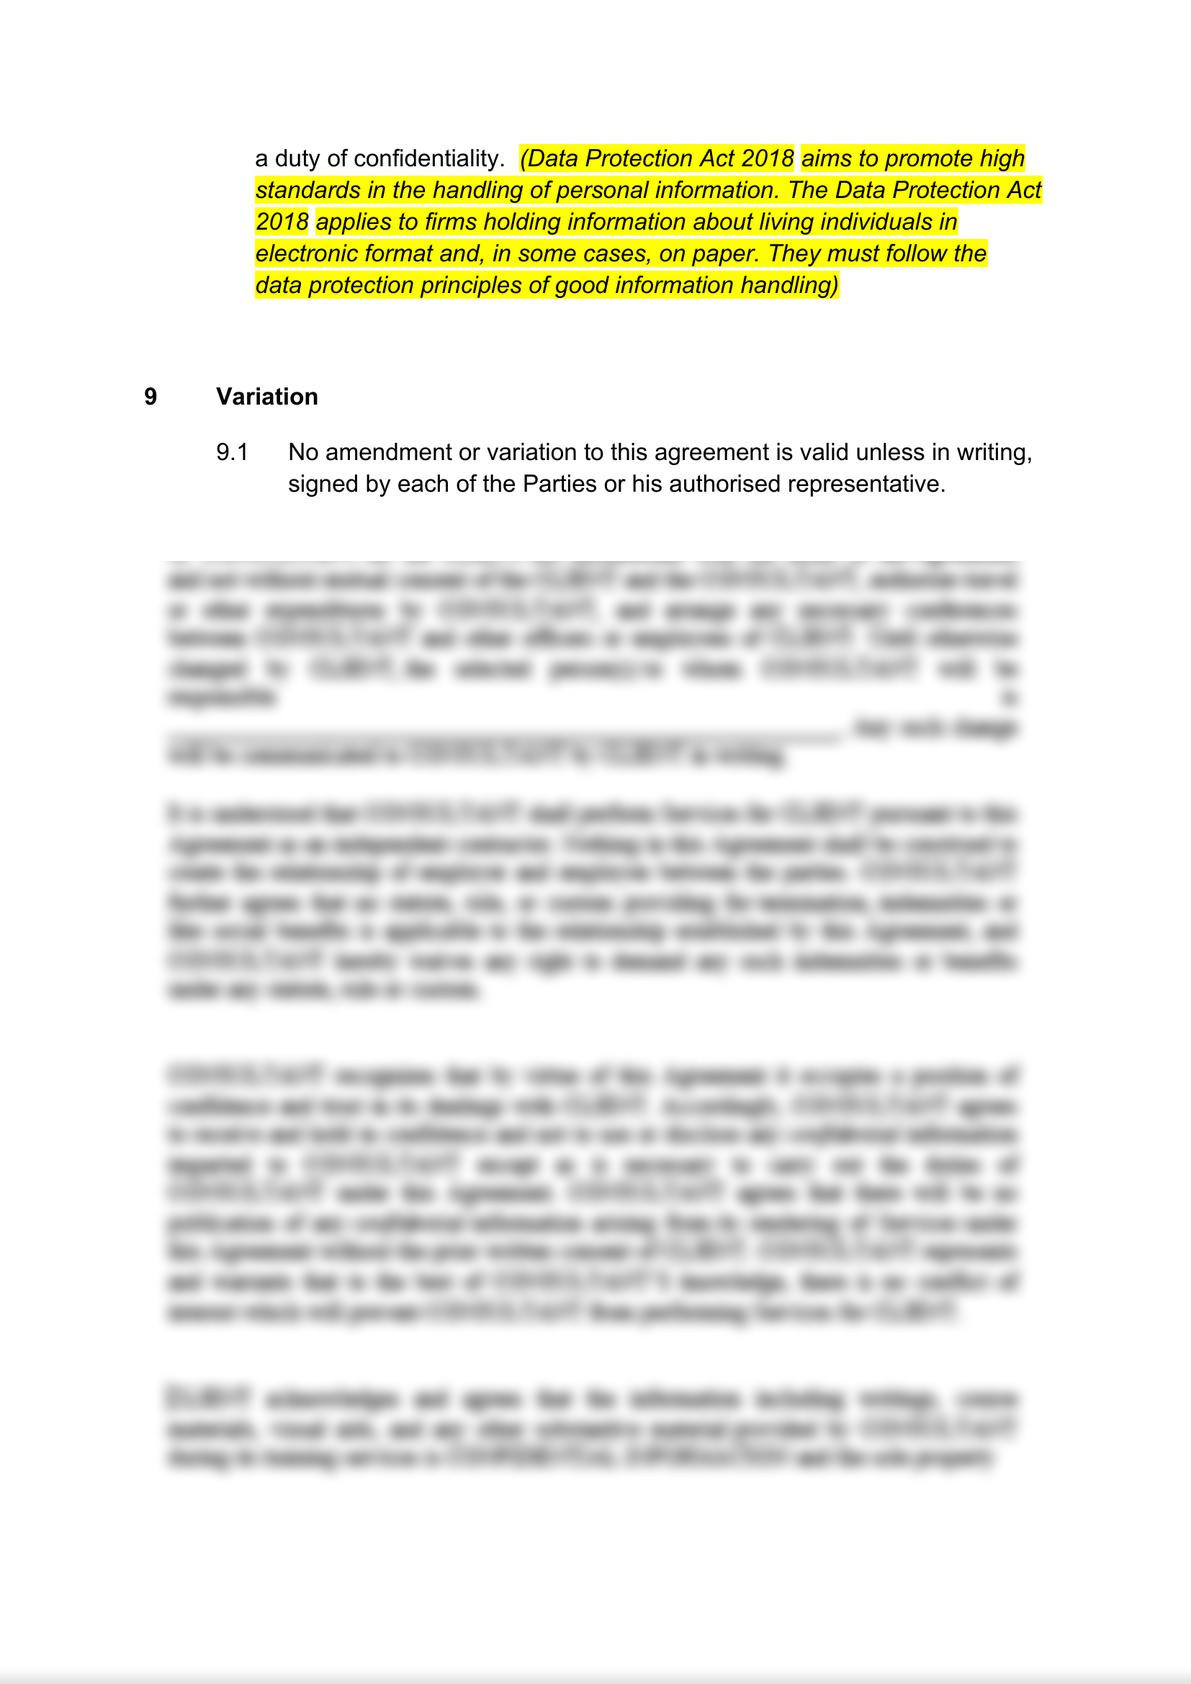 Employment agency agreement: client's version-4